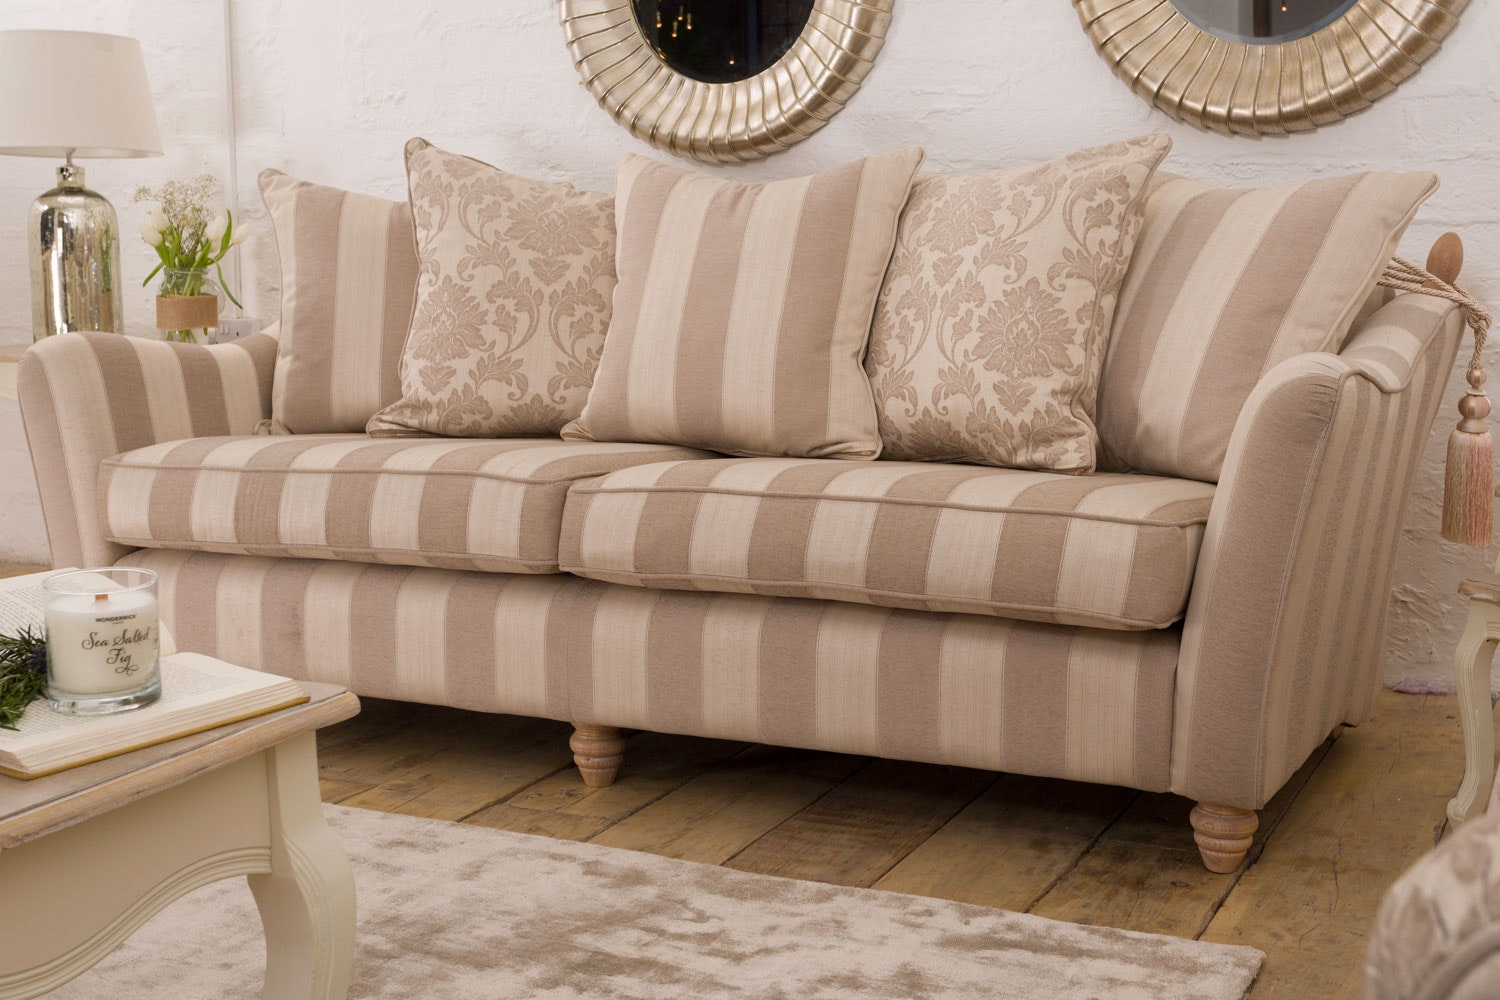 Sutton 4 Seater Sofa